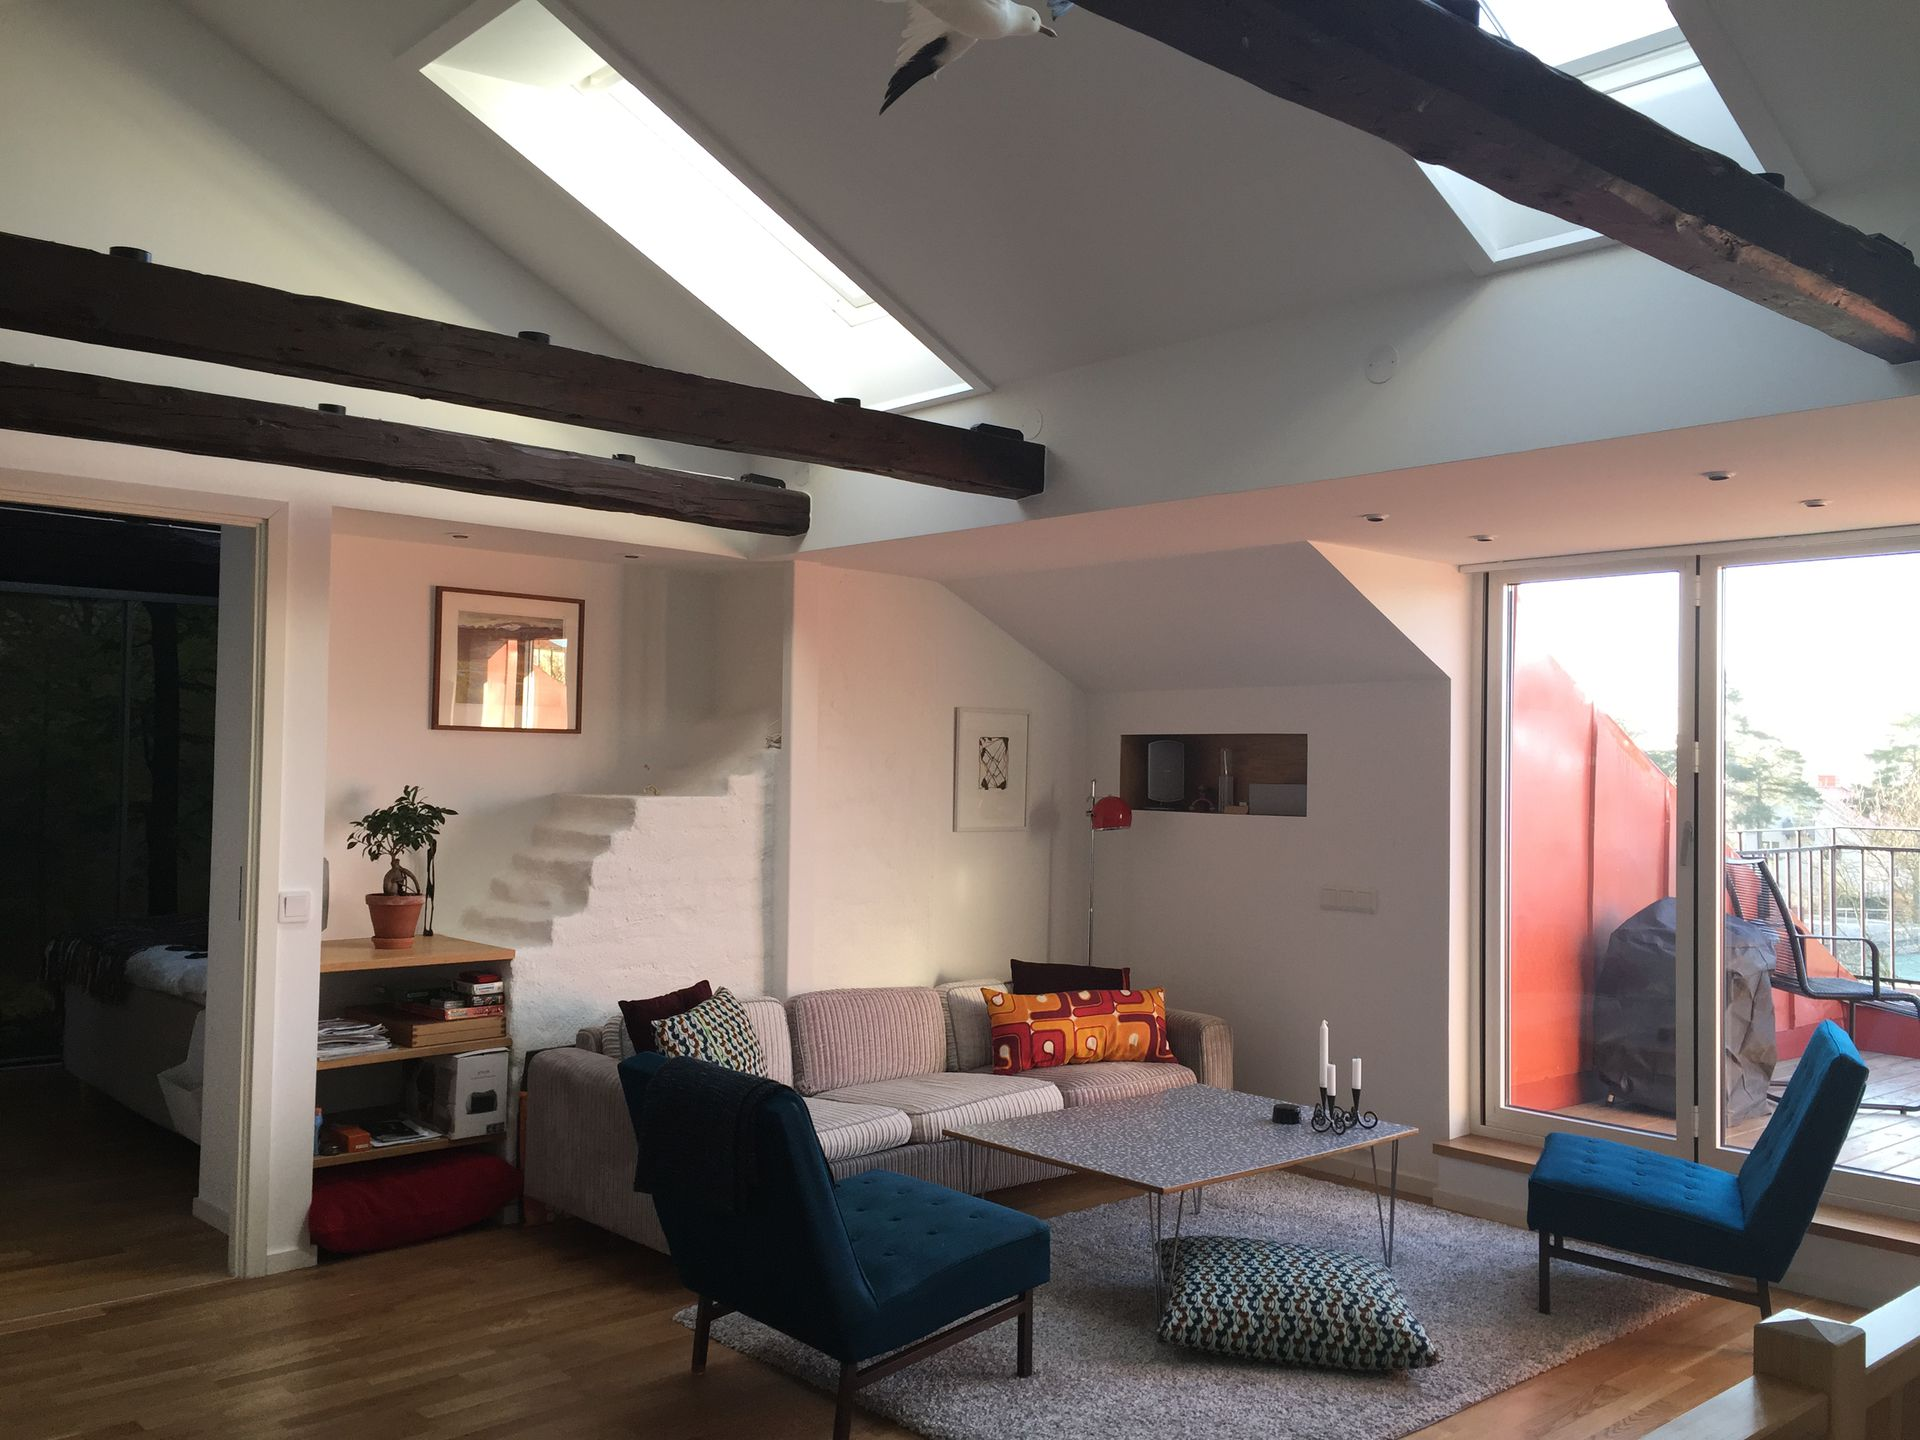 Livingroom on second floor. & Stockholm Sweden. Sunny two floor apartment. 120 square meters ...